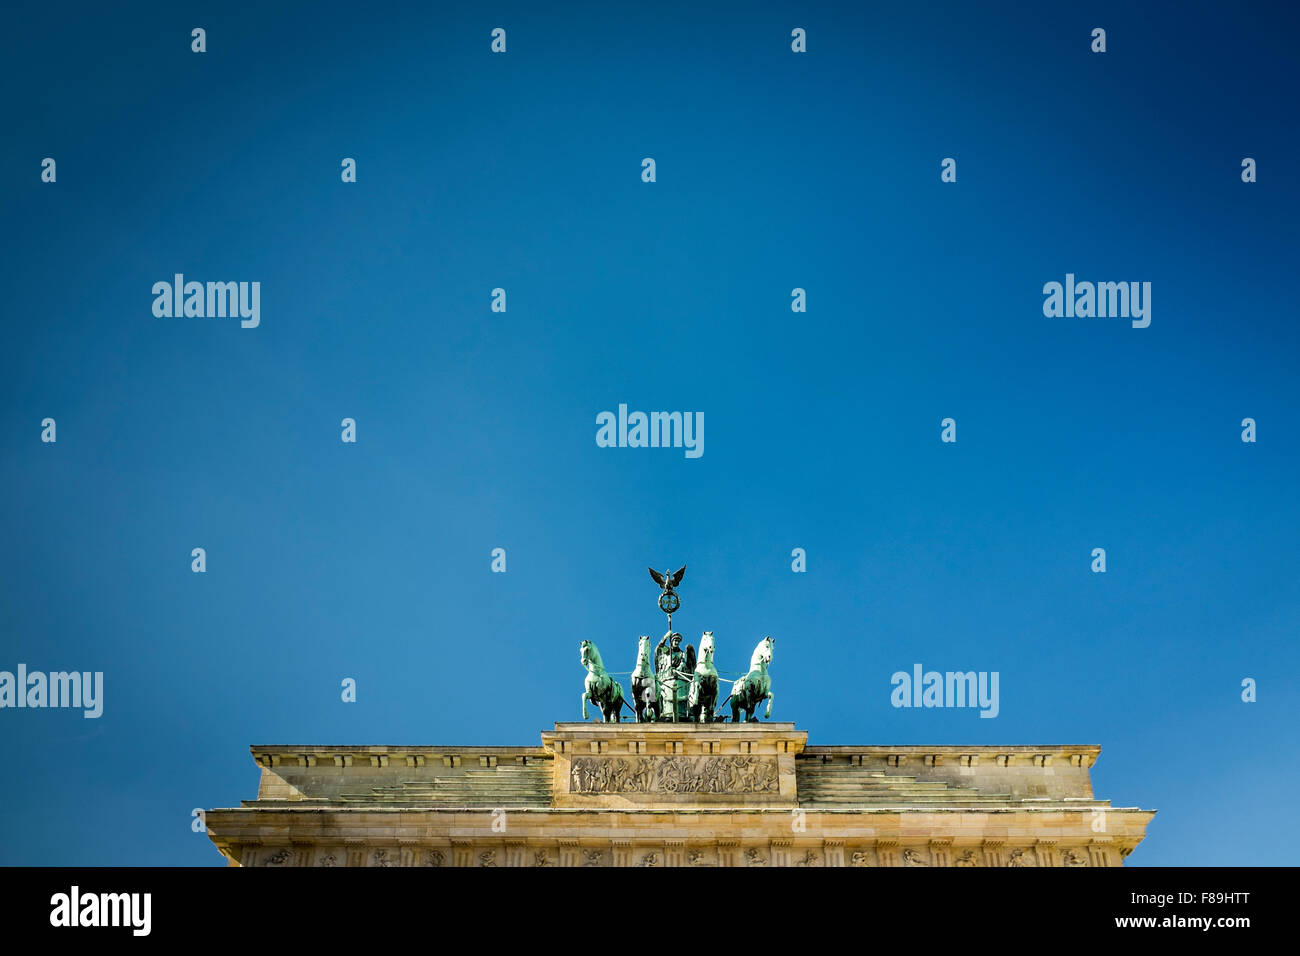 Sur le Quadriga Porte de Brandebourg, Berlin, Allemagne Photo Stock